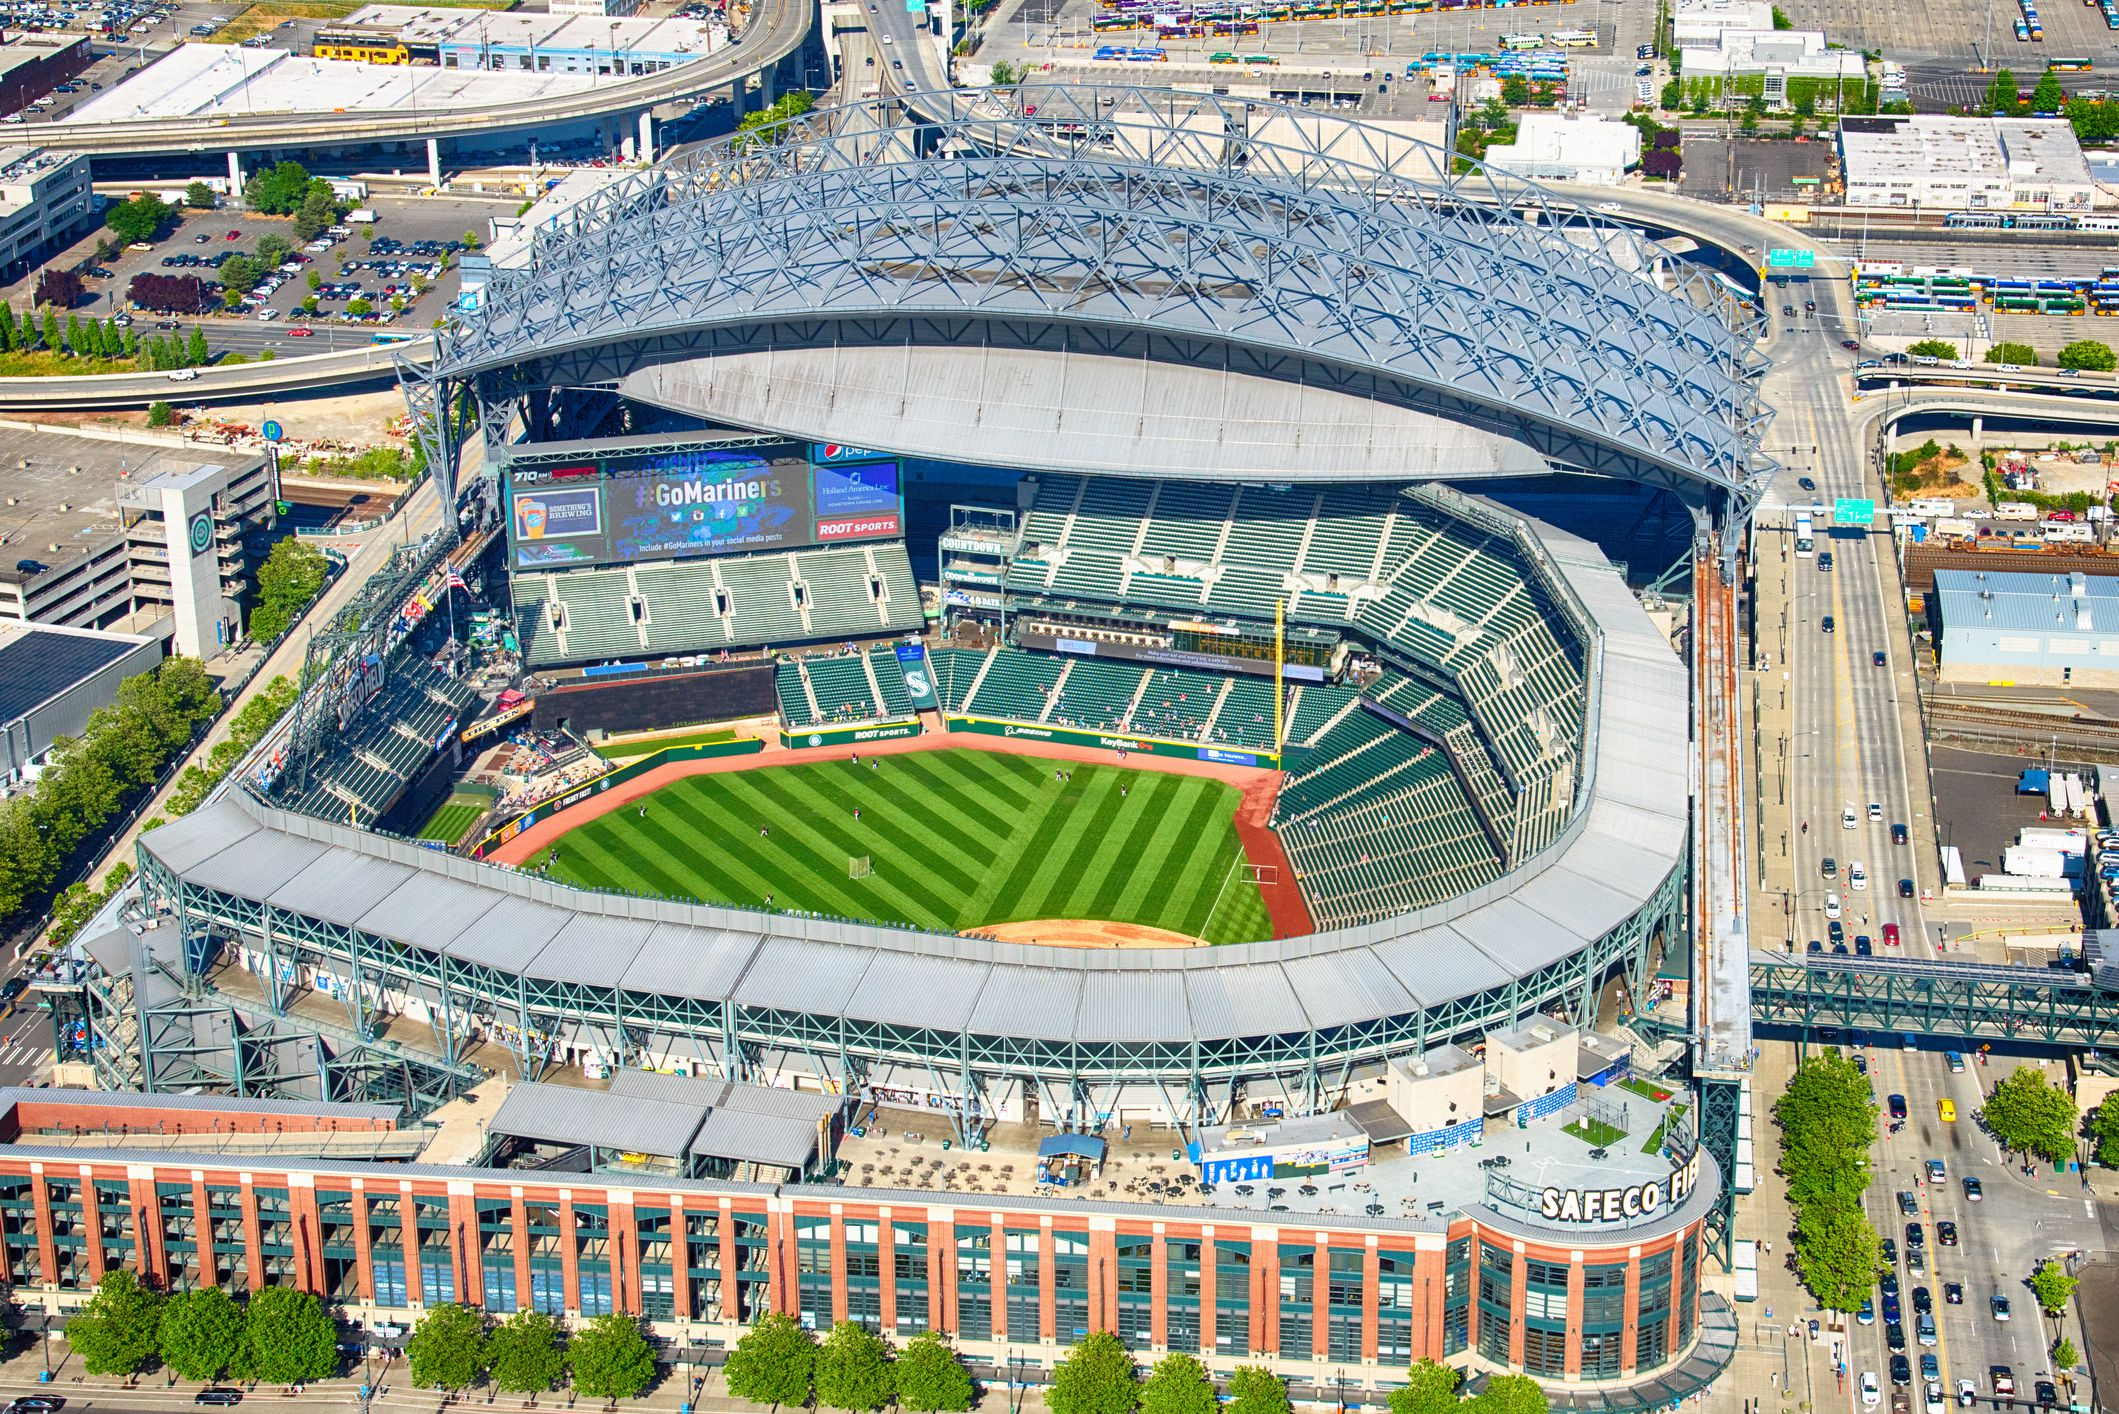 T-Mobile park, formerly safeco field